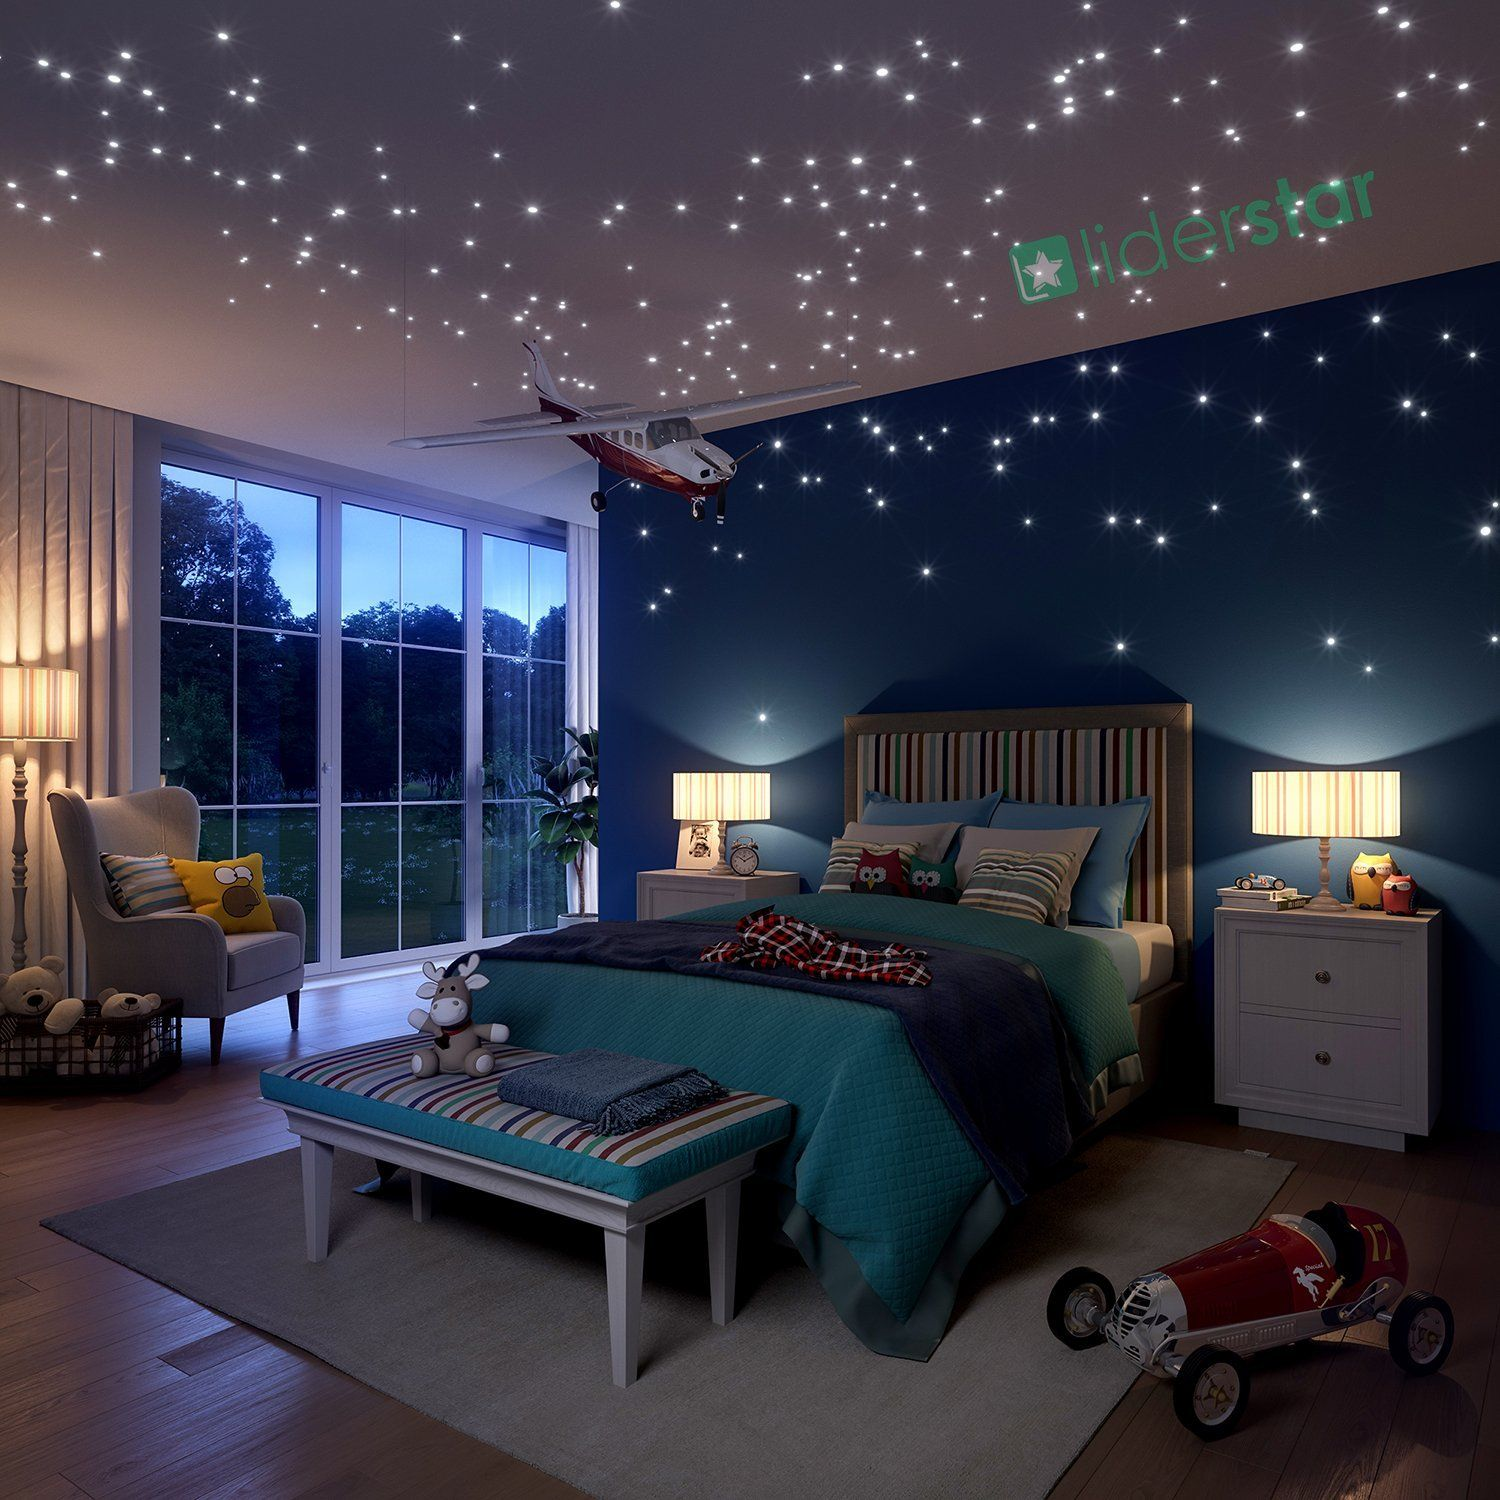 Bedroom Ceiling Stars Bedroom Cupboards With Mirror Grey Bedroom Black Furniture Bedroom Colours According To Vastu Shastra: Glow In The Dark Stars Wall Vinyl Stickers, 504 Dots And